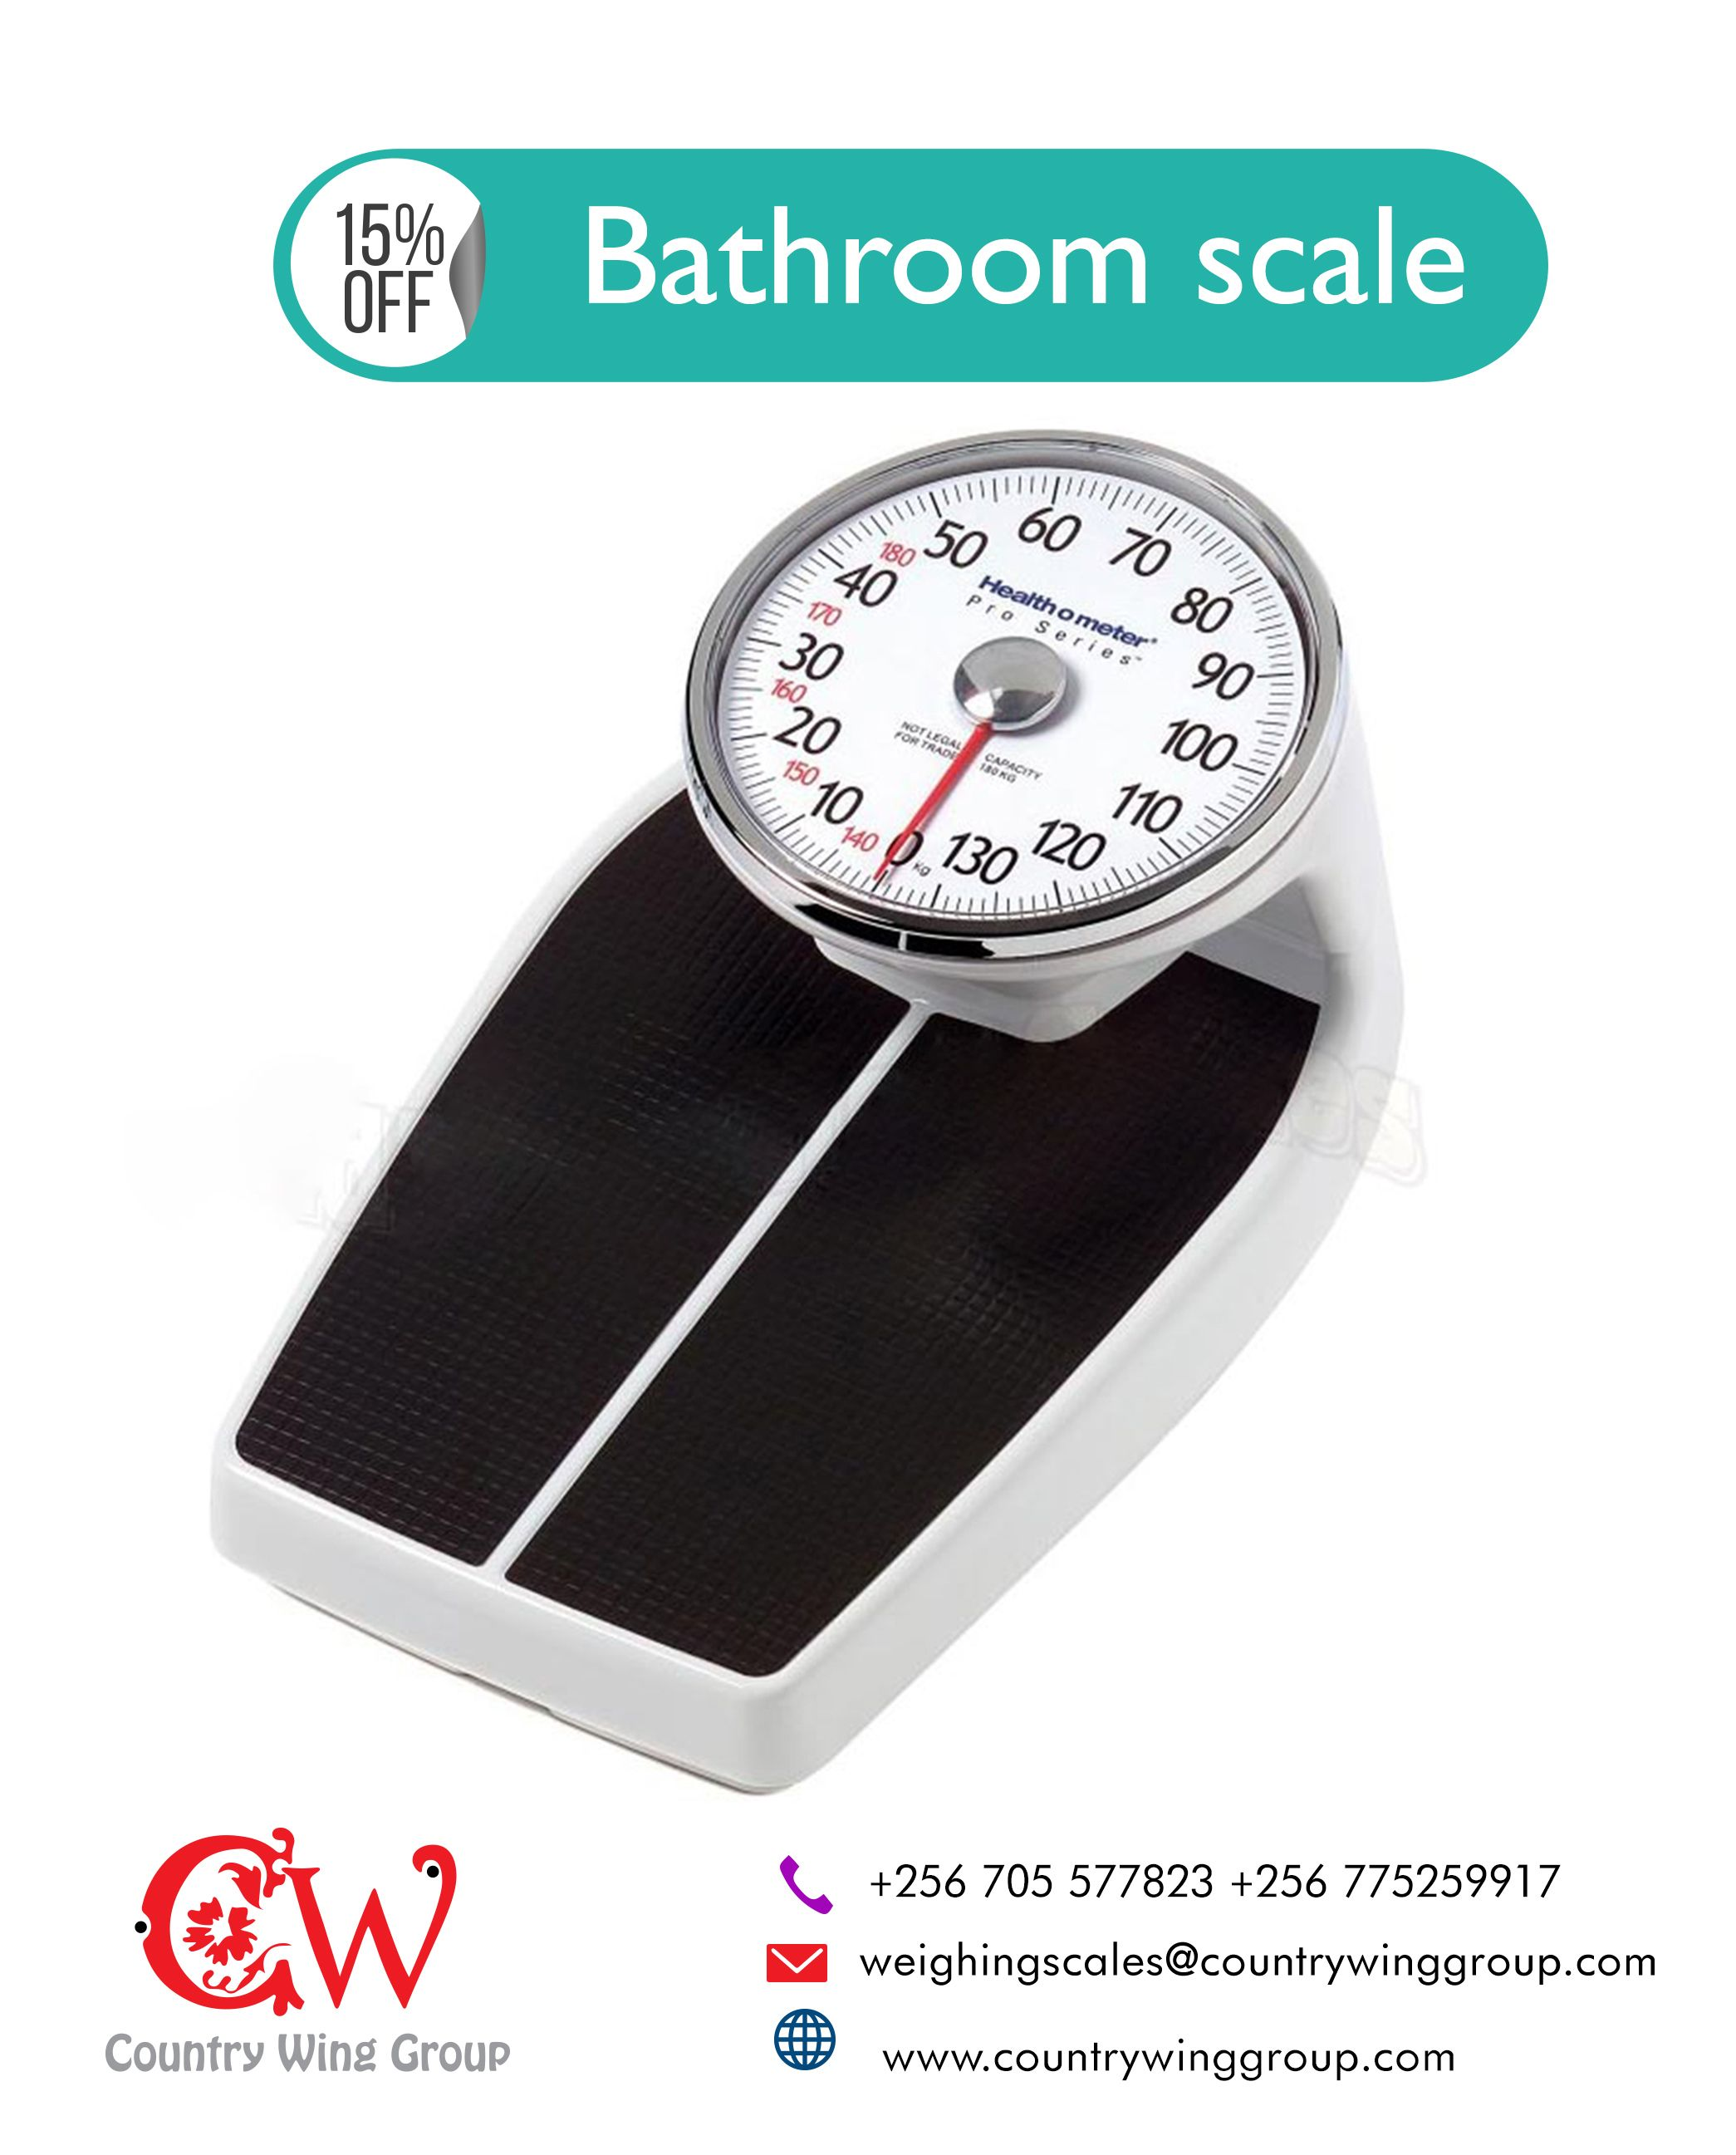 Weighing Scale calibration and verification is of utmost